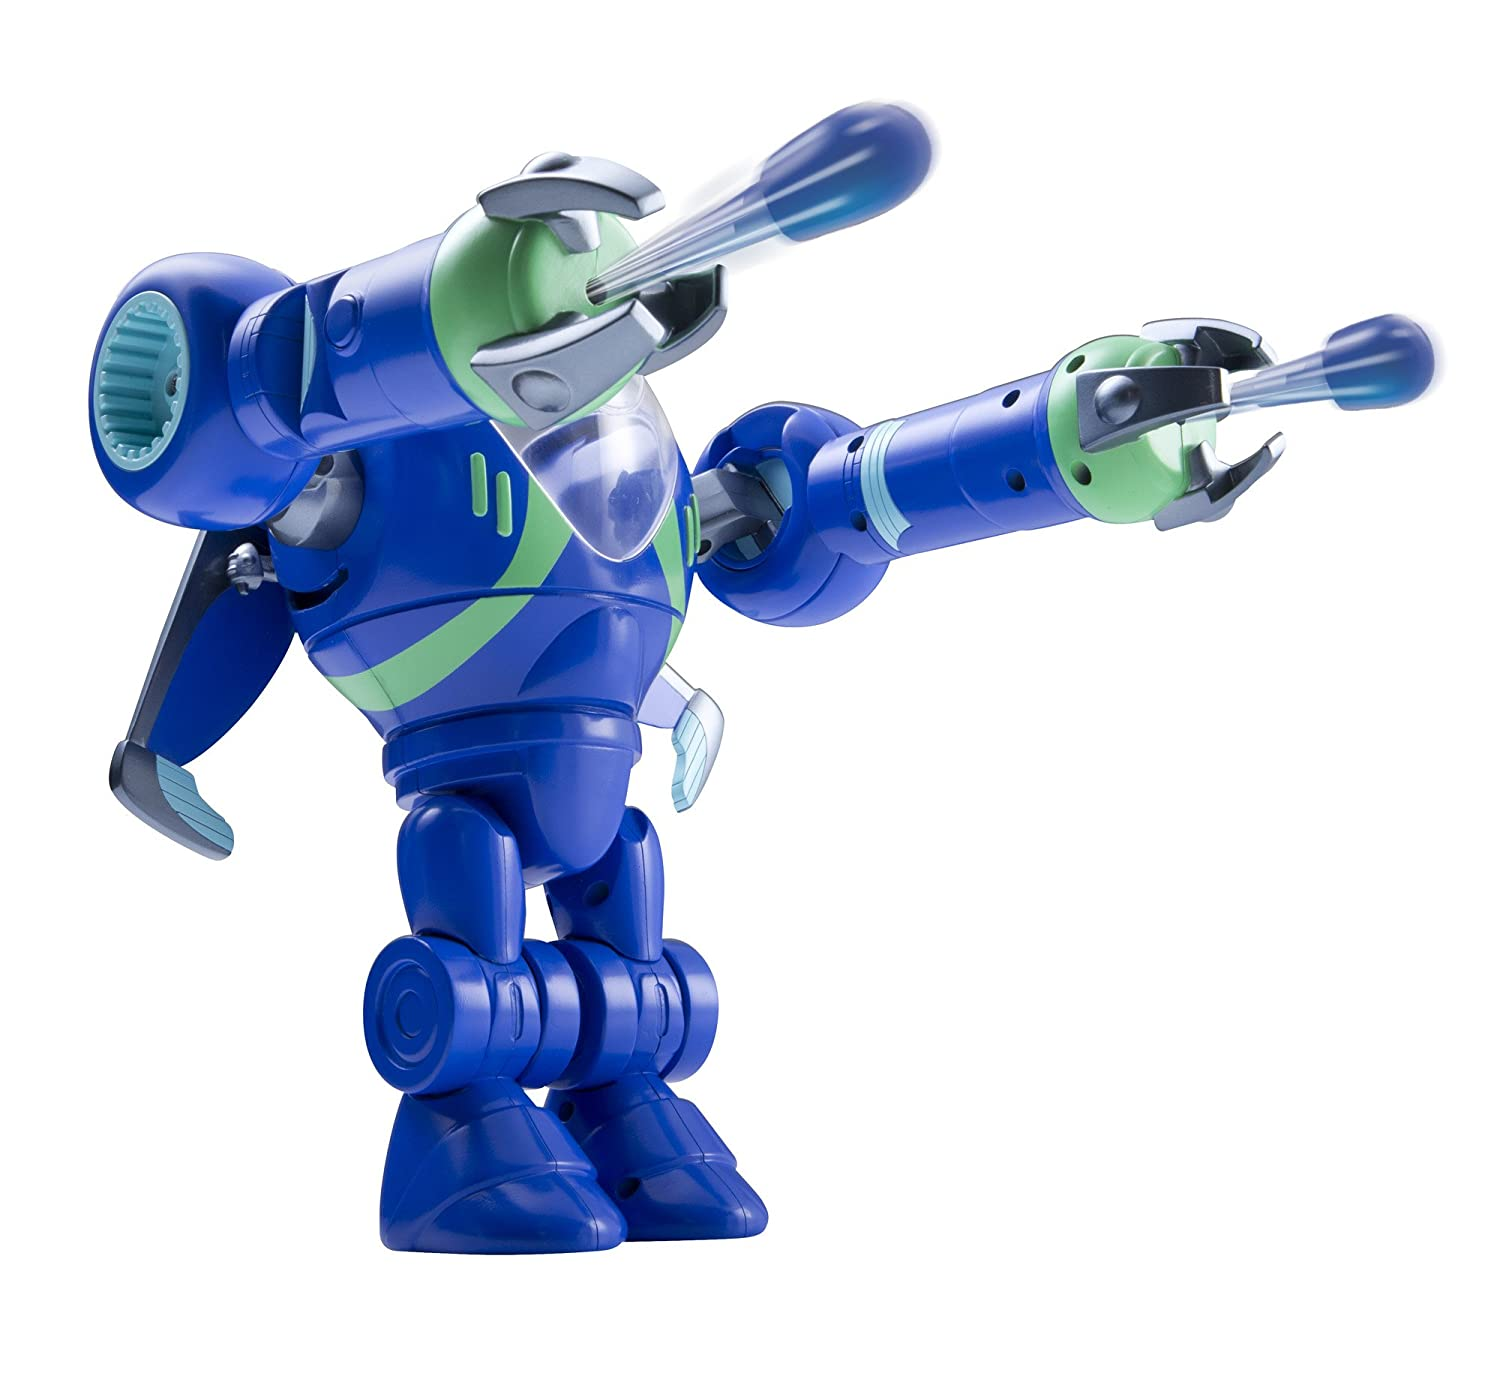 TOMY Boys Miles from Tomorrowland Vehicle (Transforming Exo-Flex) L86205